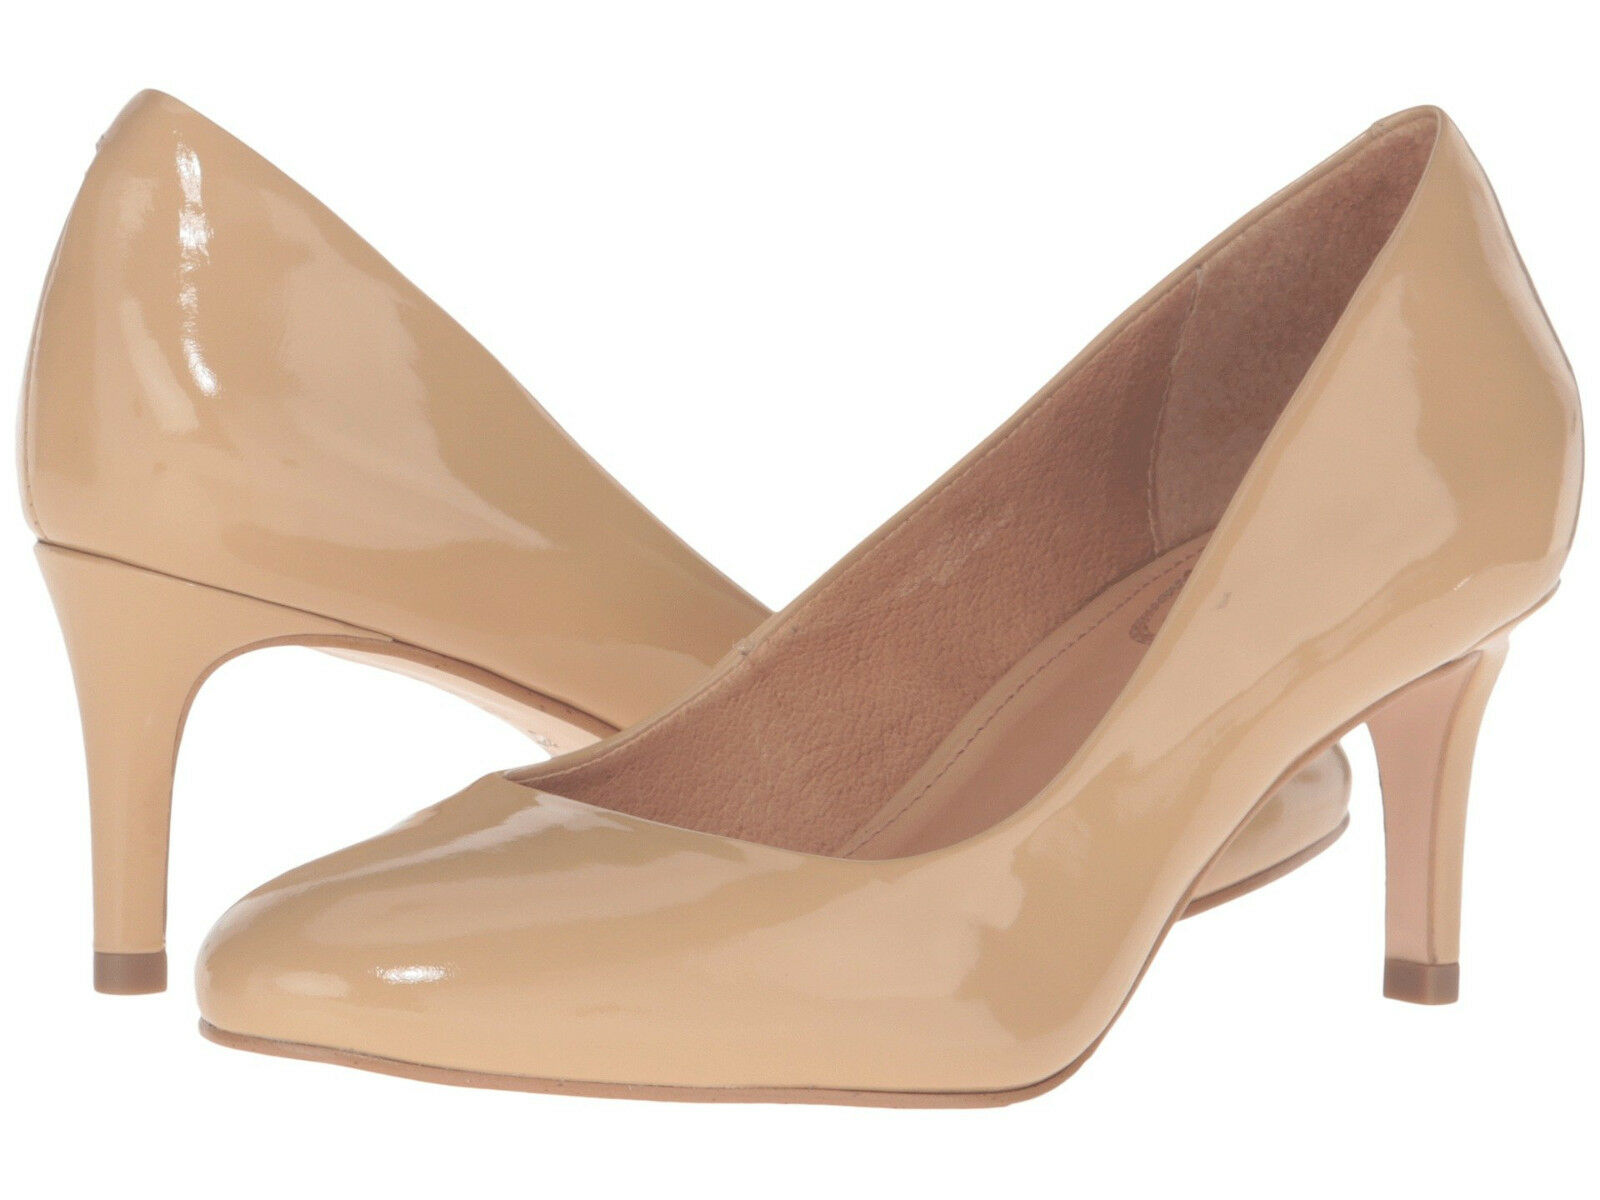 New New New In Box Womens Corso Como Linden Beige Patent Leather Pumps Heels shoes 2ce4f7